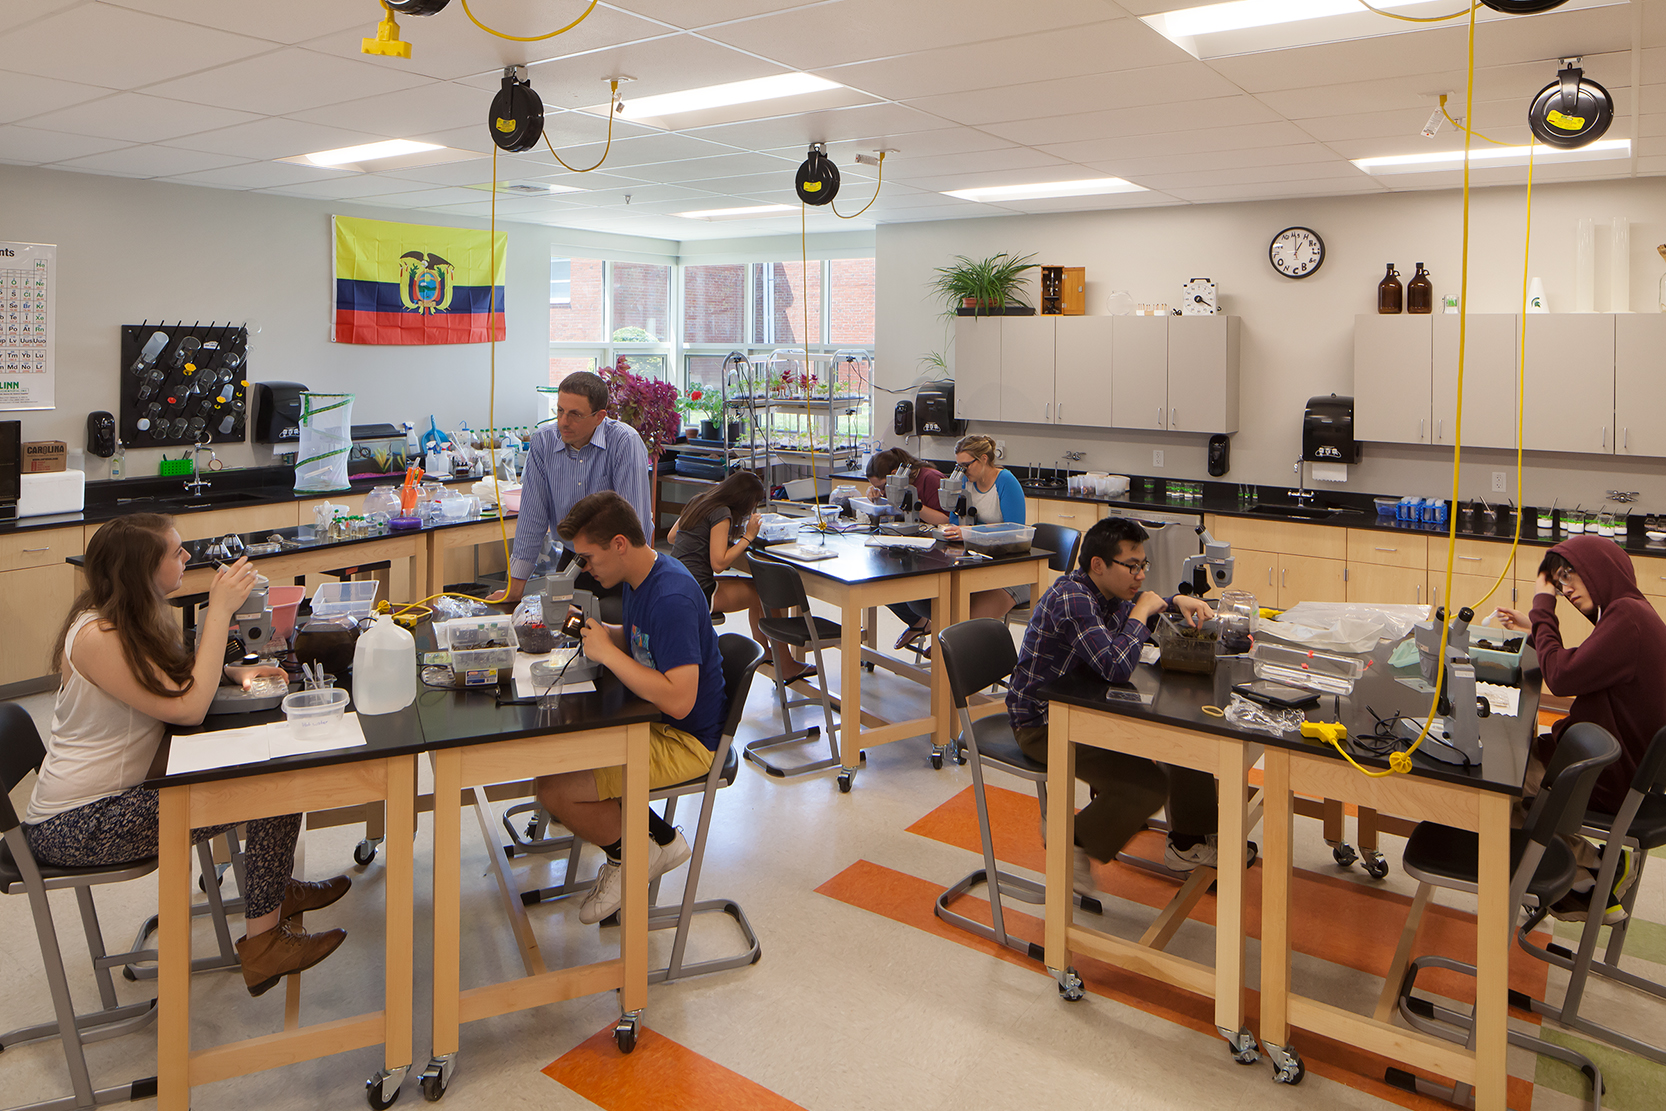 Students can easily rearrange the furniture in these science classrooms depending on the assignment. Power drops from the classroom ceiling enable students to plug in microscopes all over the room.